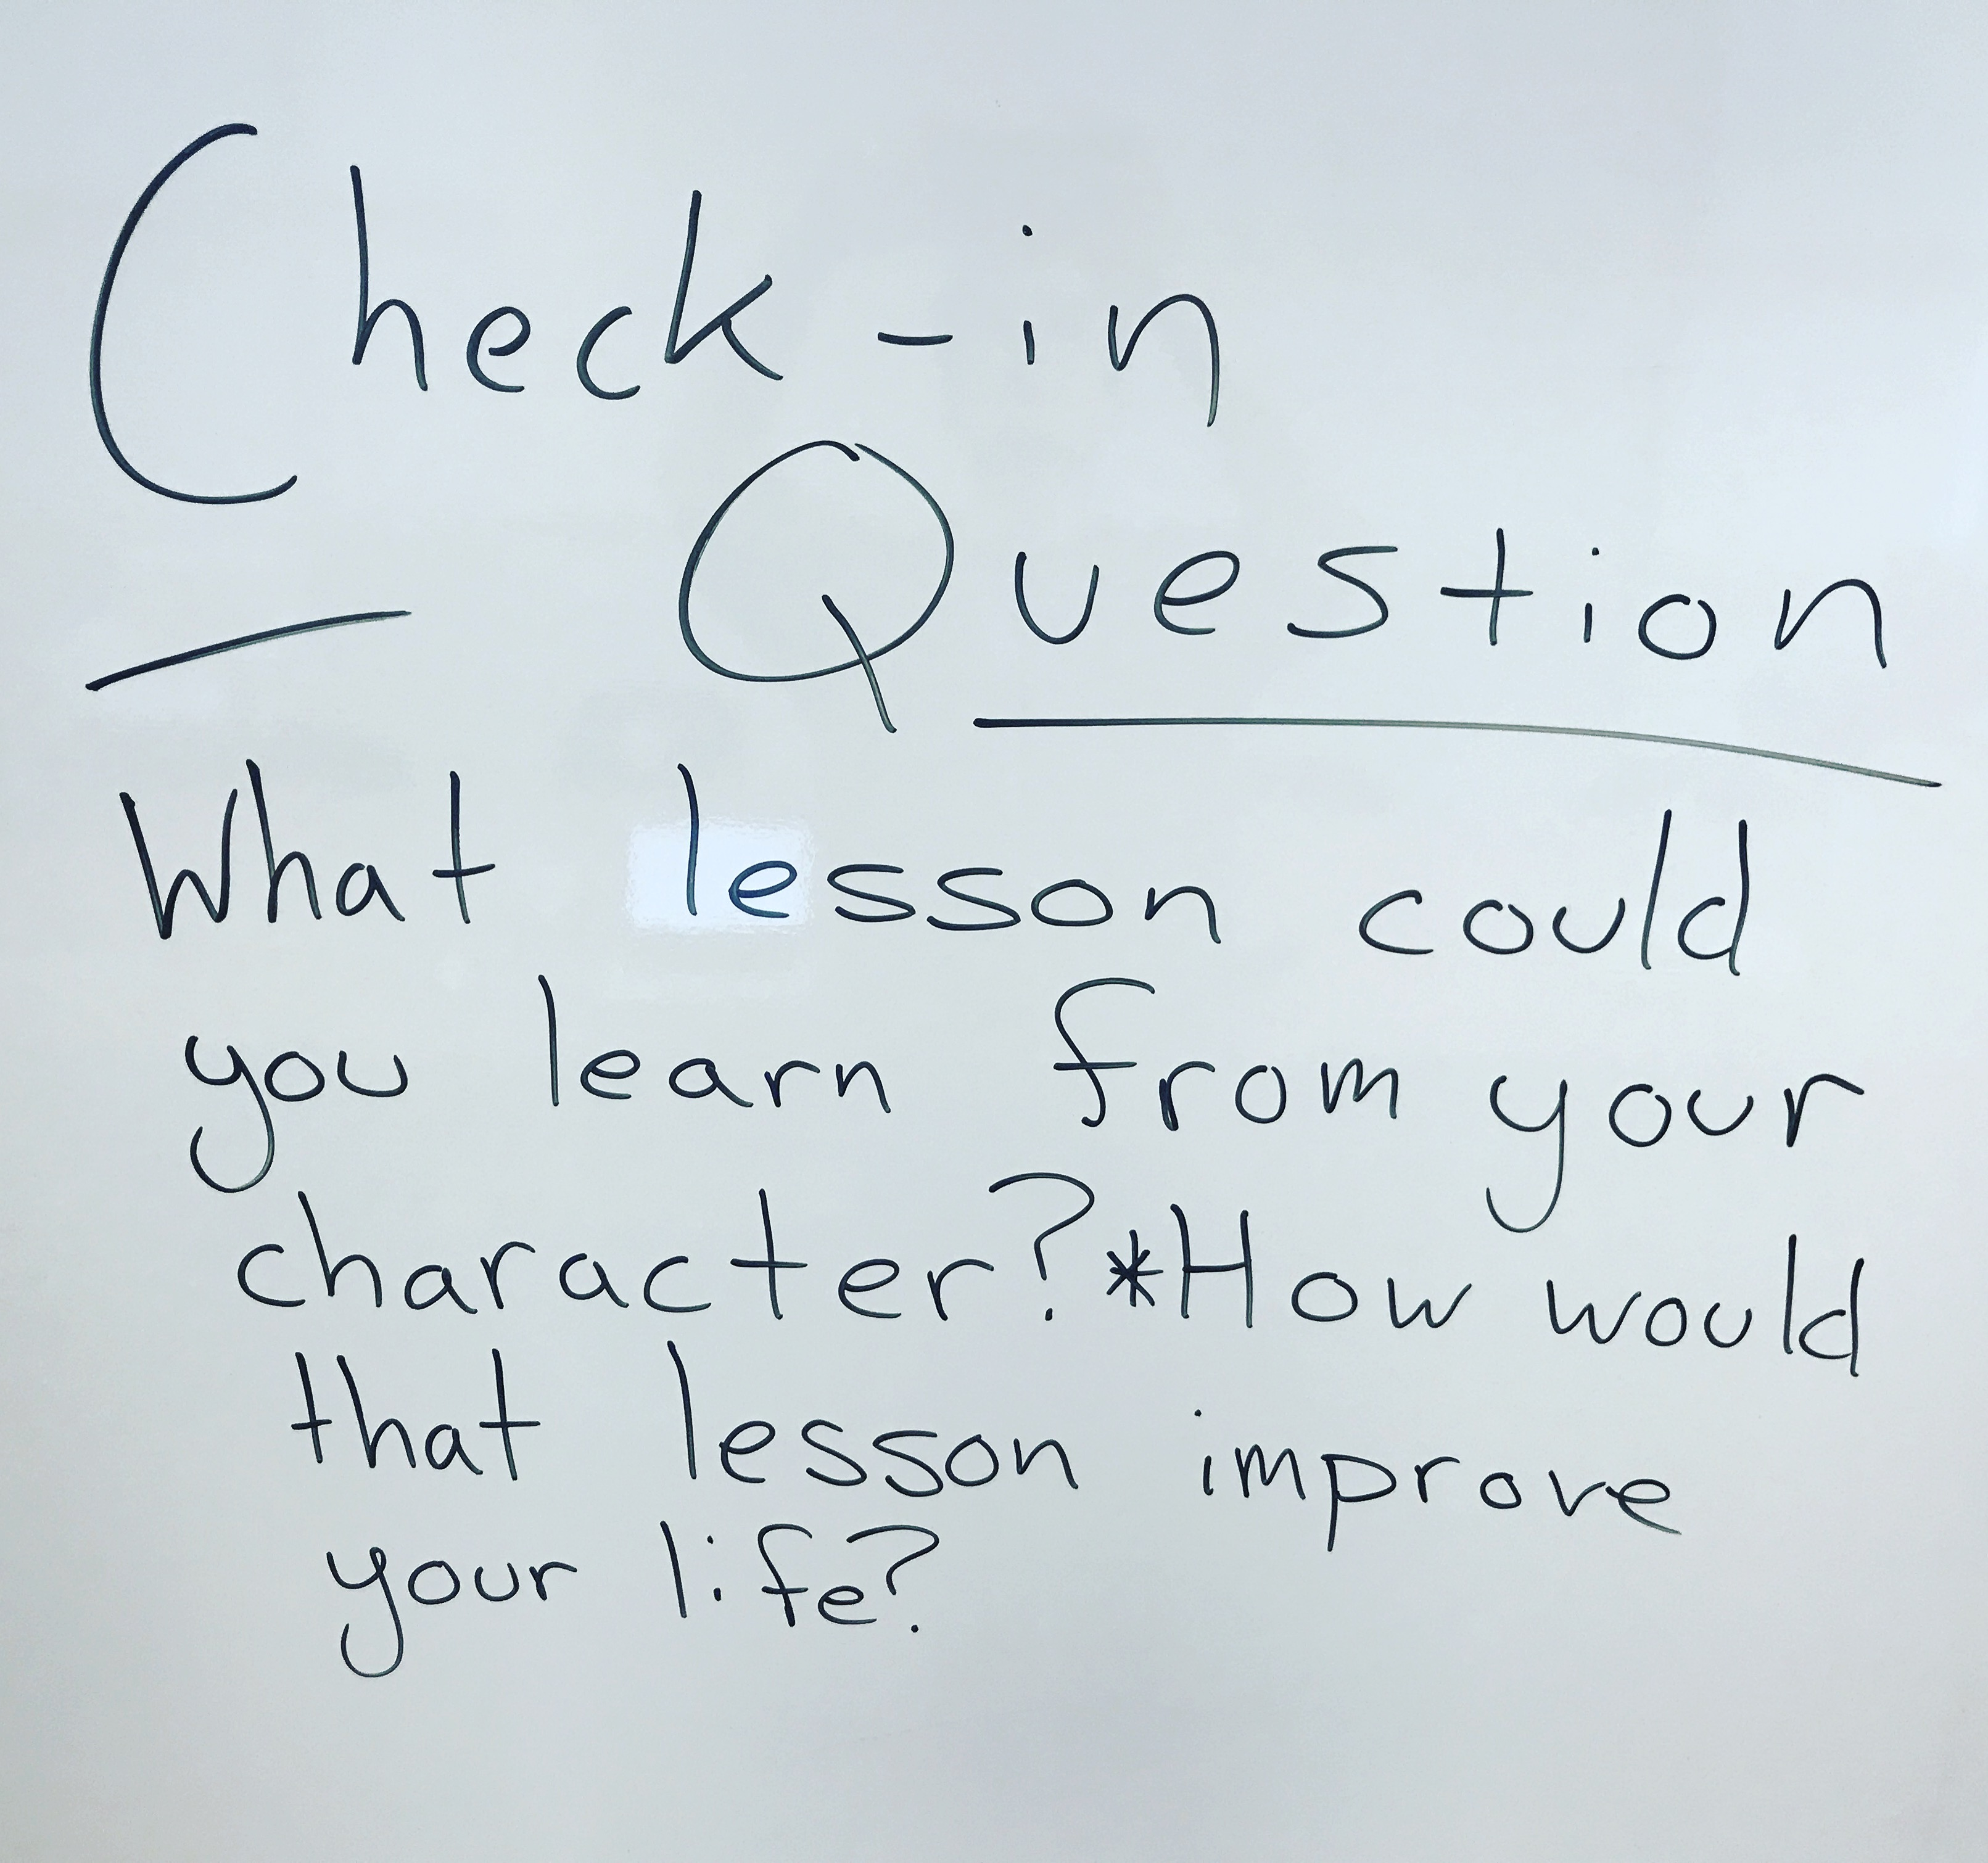 What lesson could you learn from your character? How would this lesson improve your life?